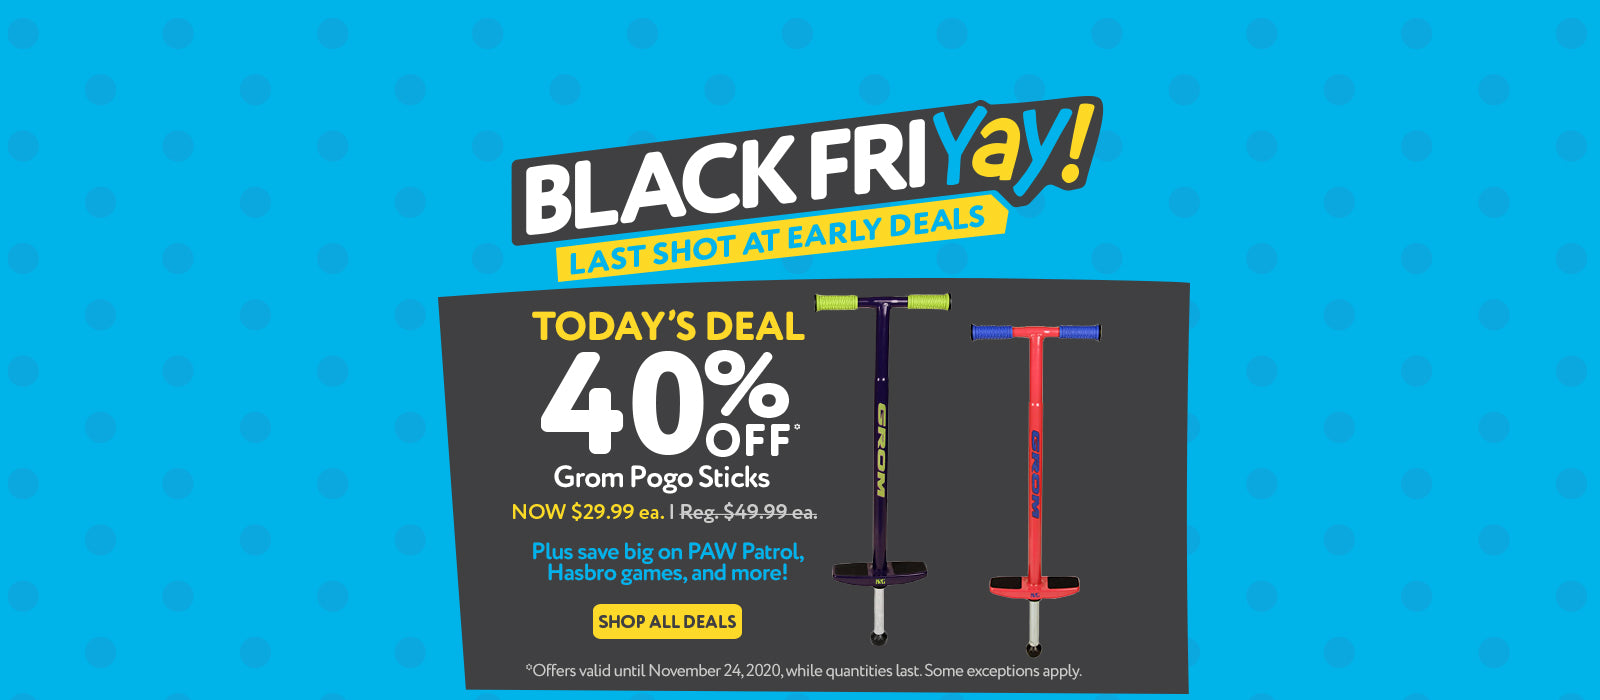 Black Friday Early Deals